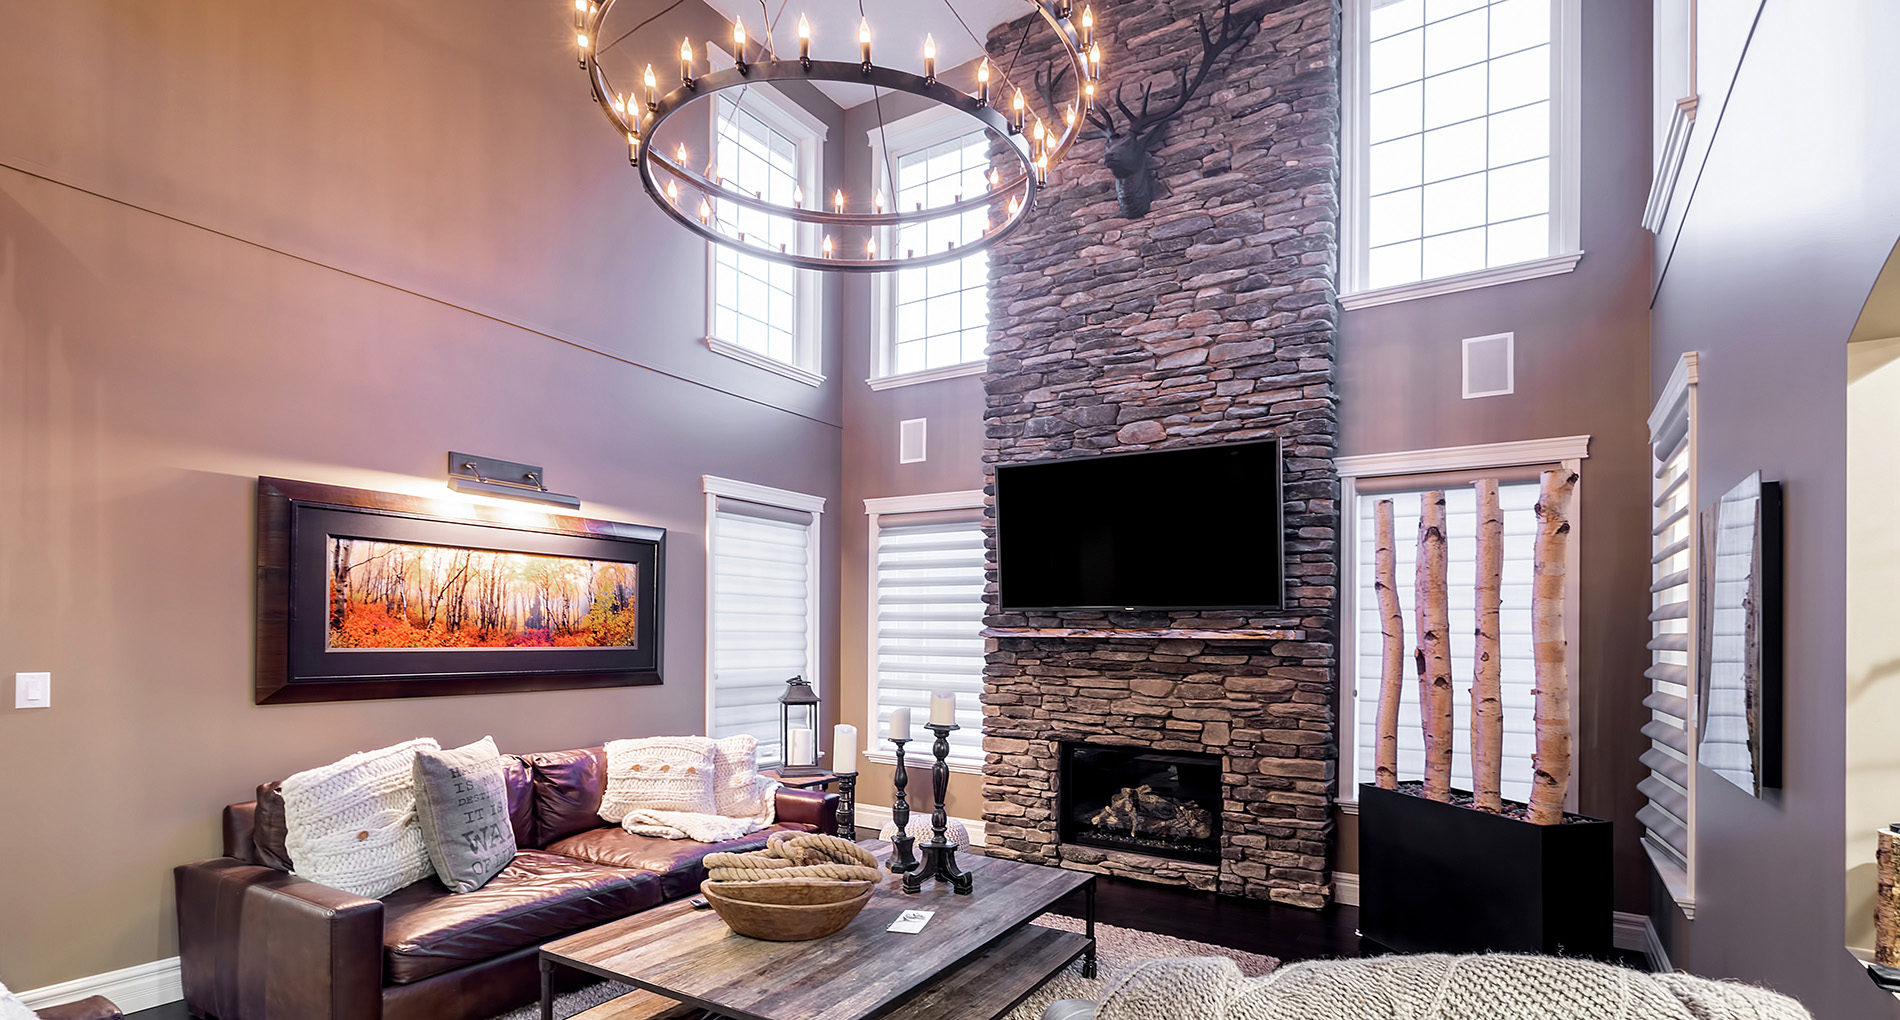 Home Remodeling Renovations In Houston Alair Homes Houston - Home remodeling houston